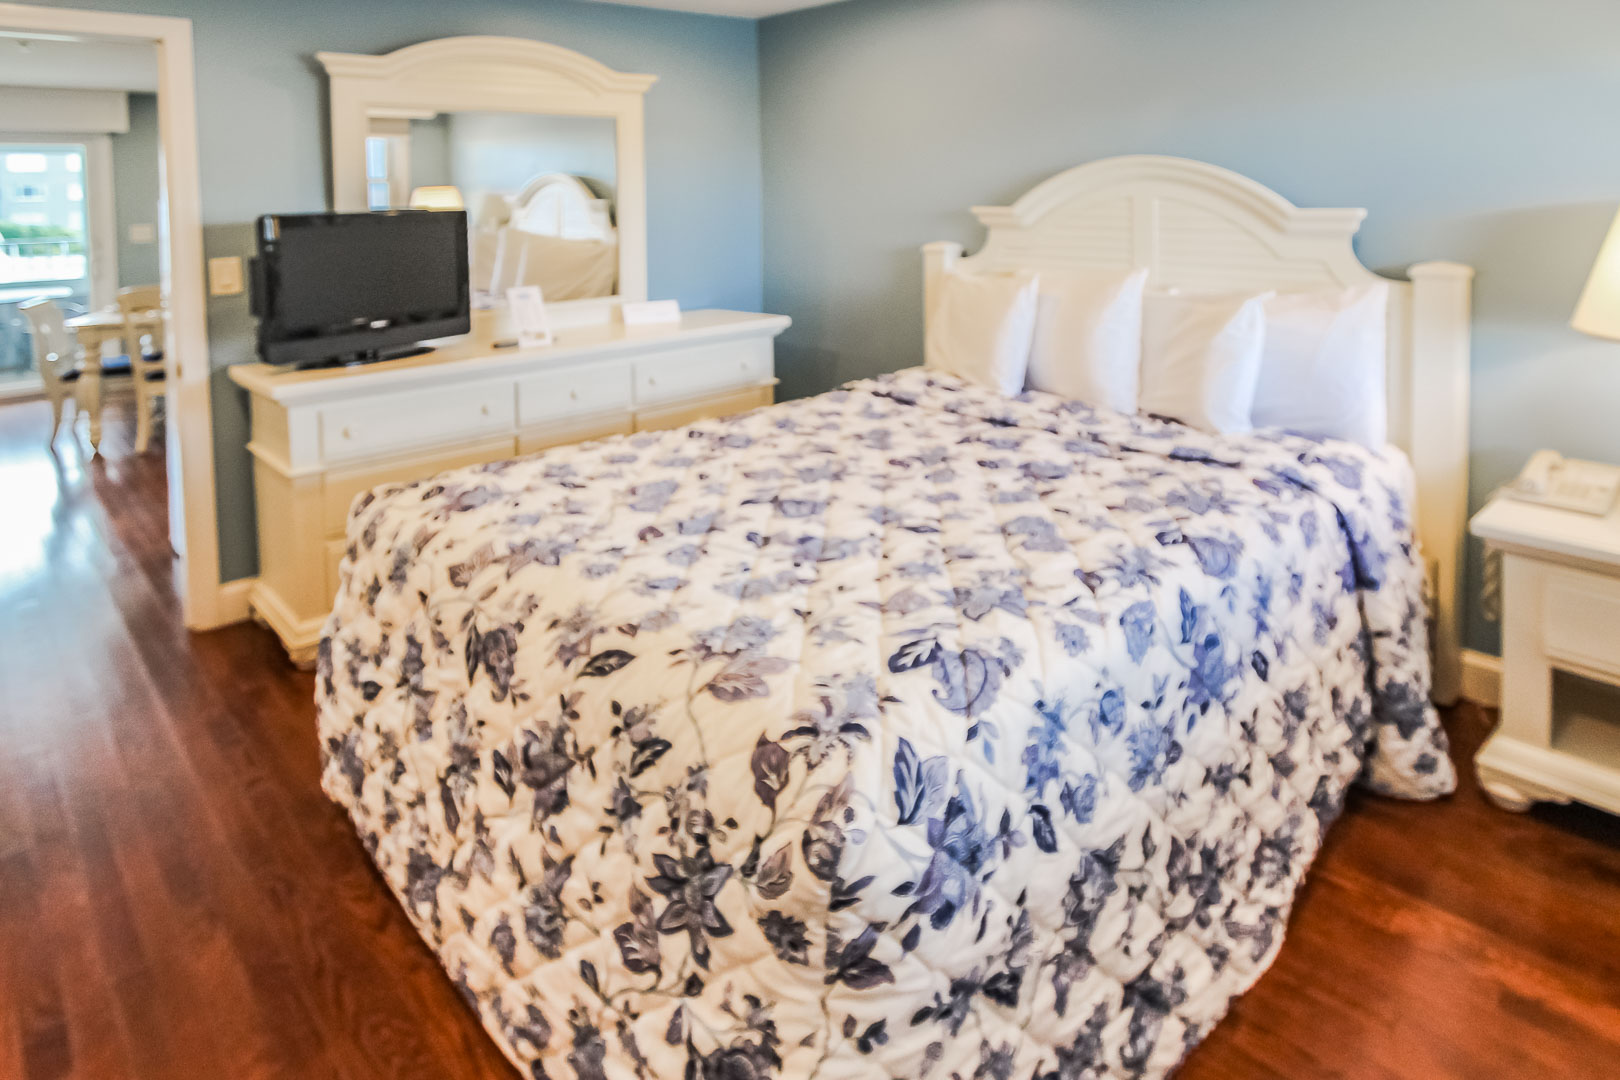 A refreshing master bedroom with a bathroom at VRI's Edgewater Beach Resort in Massachusetts.